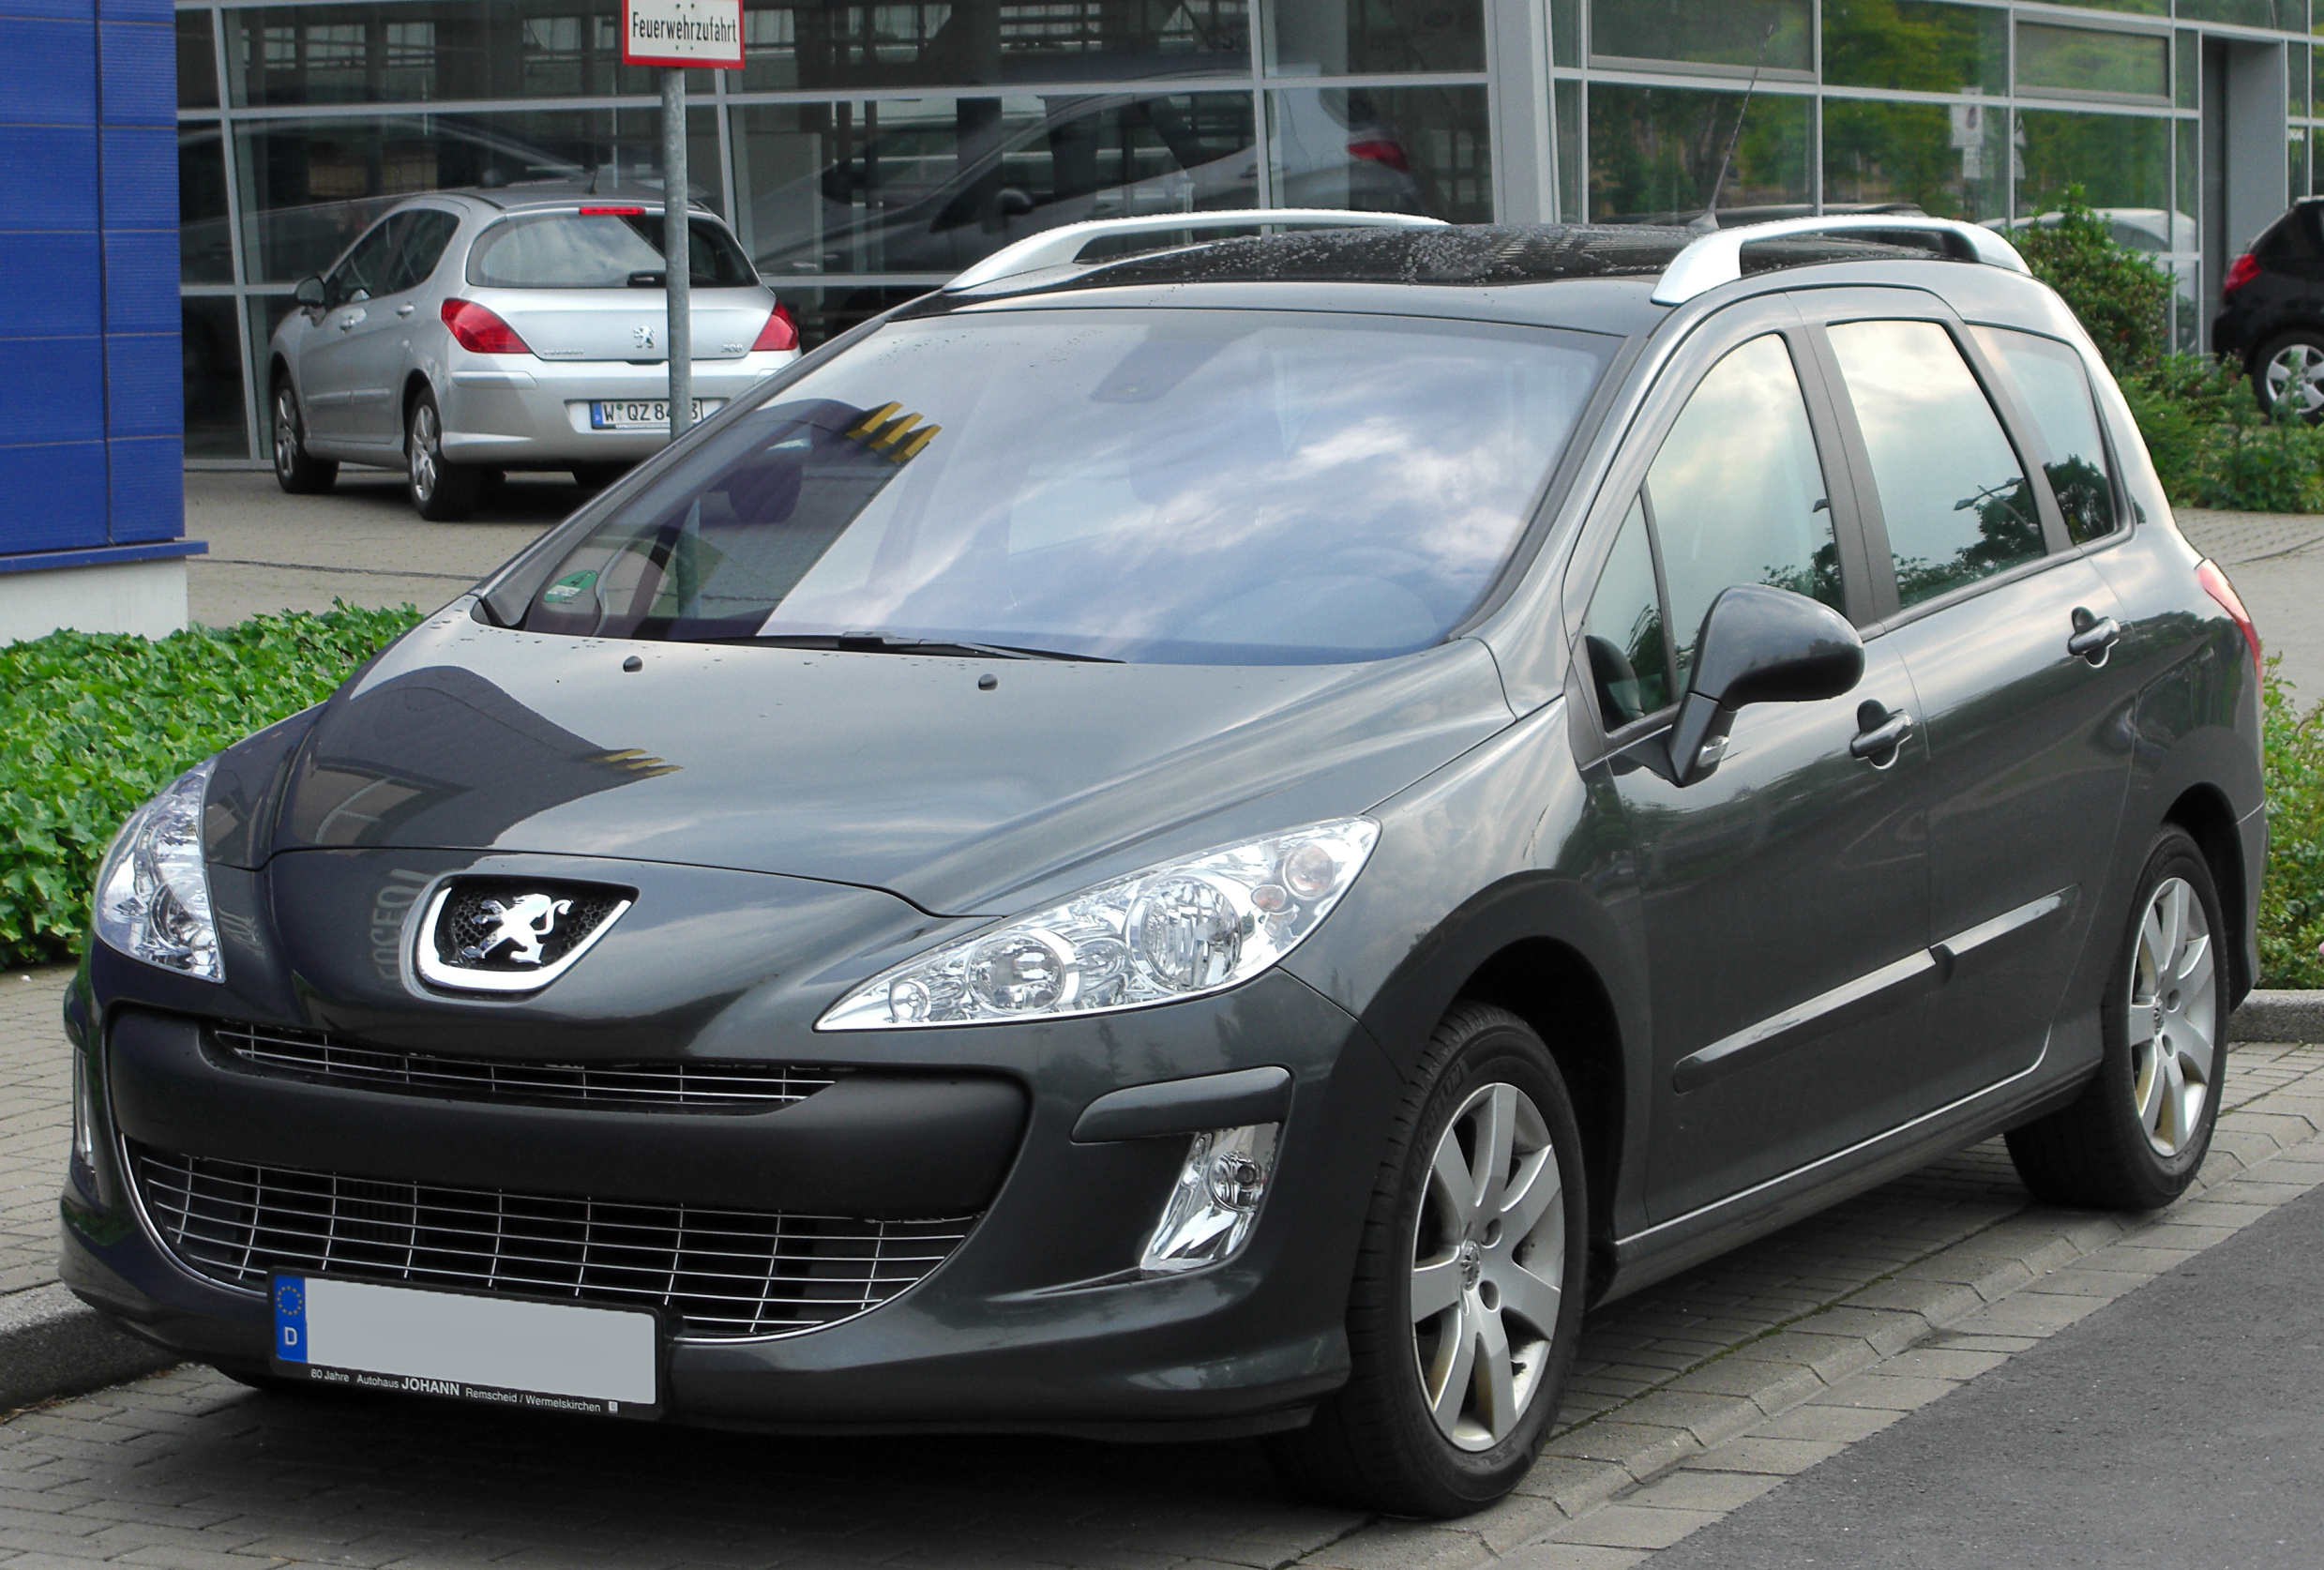 peugeot 308 2 0 2010 technical specifications interior and exterior photo. Black Bedroom Furniture Sets. Home Design Ideas